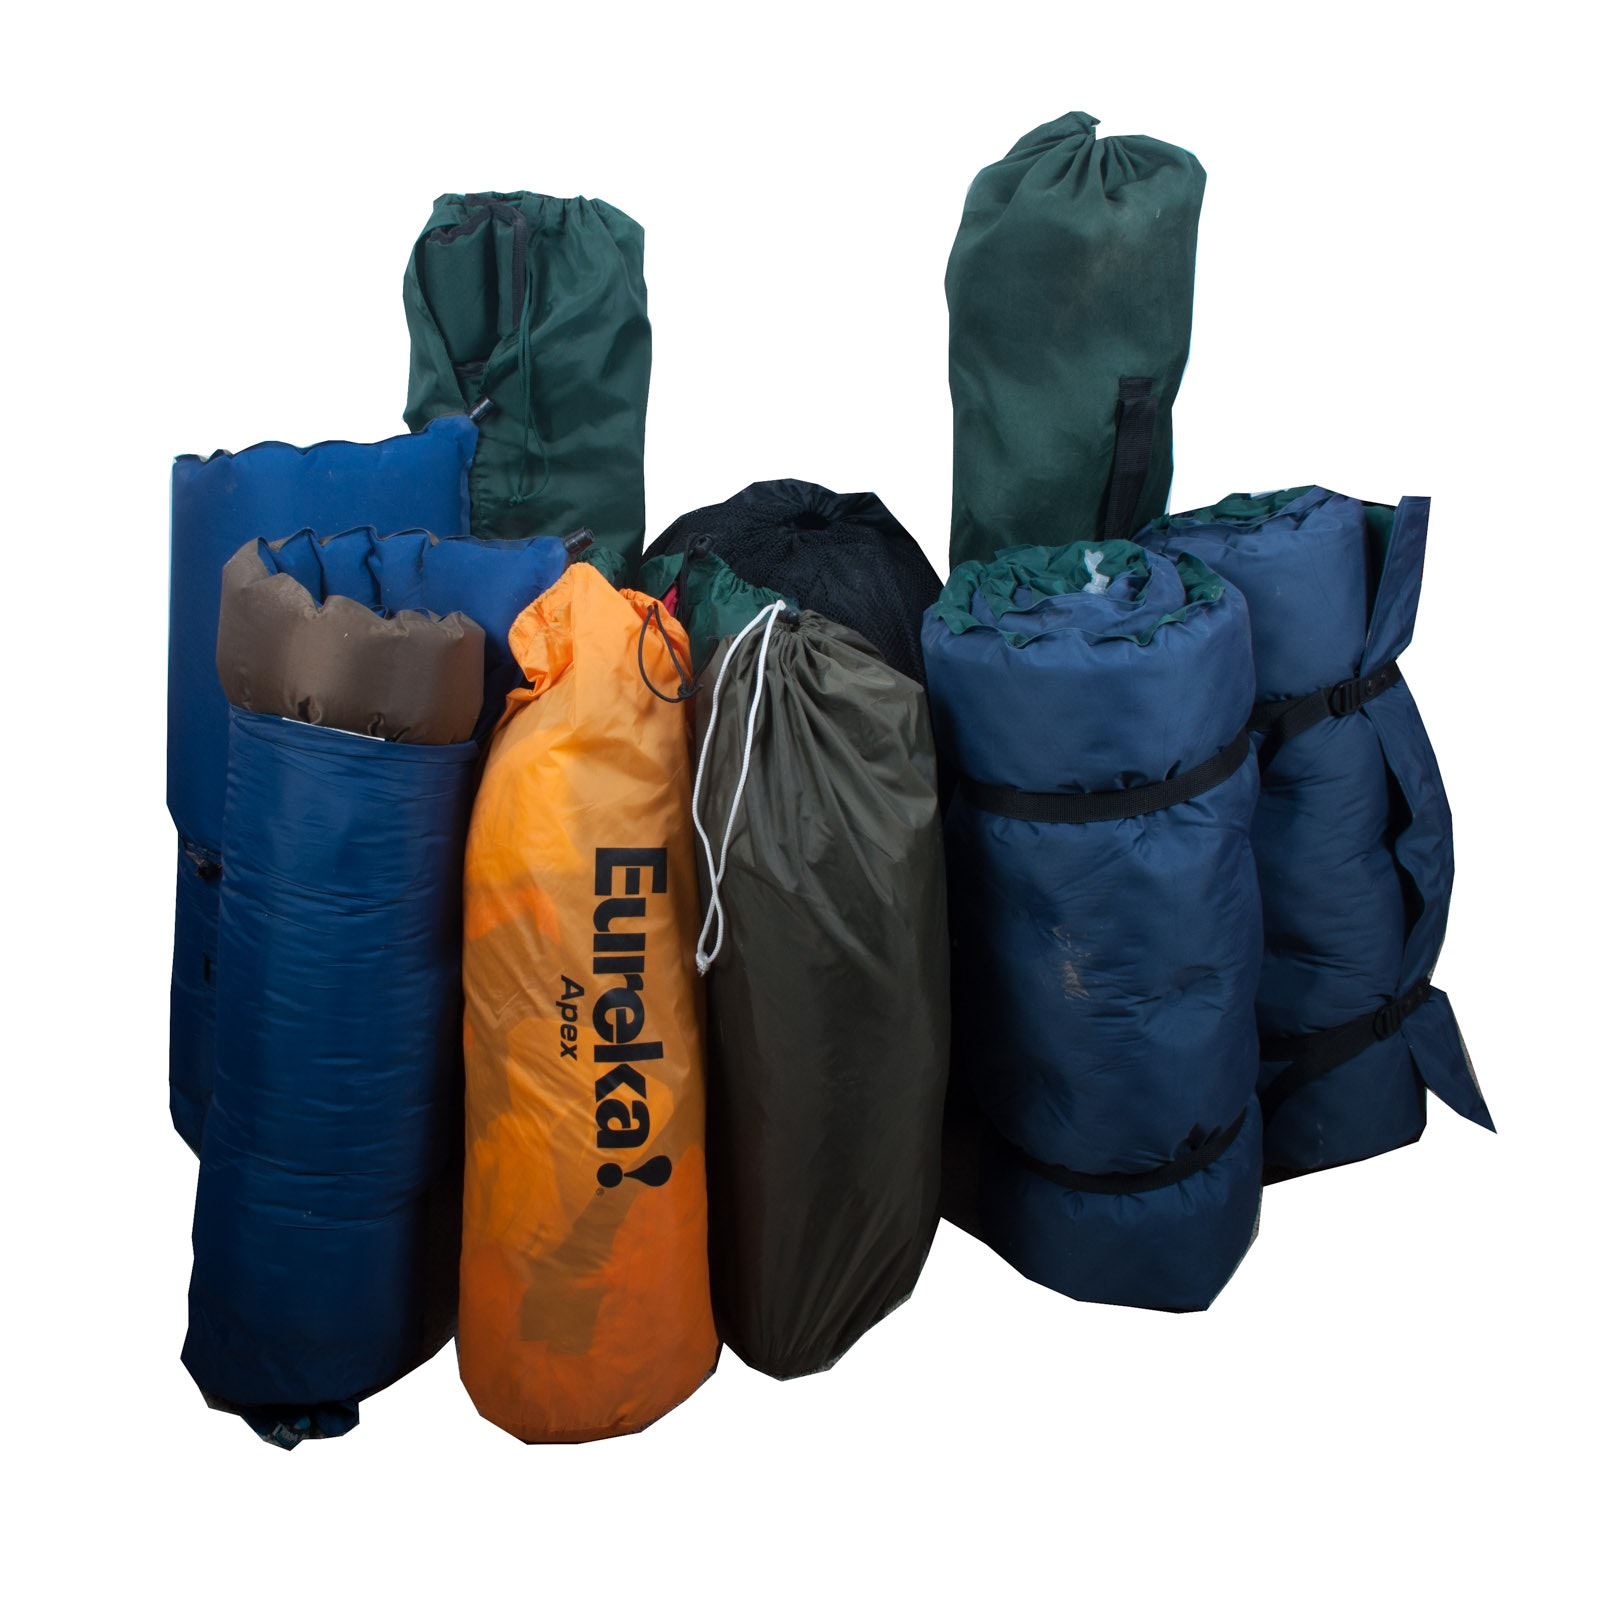 Grouping of Camping Equipment